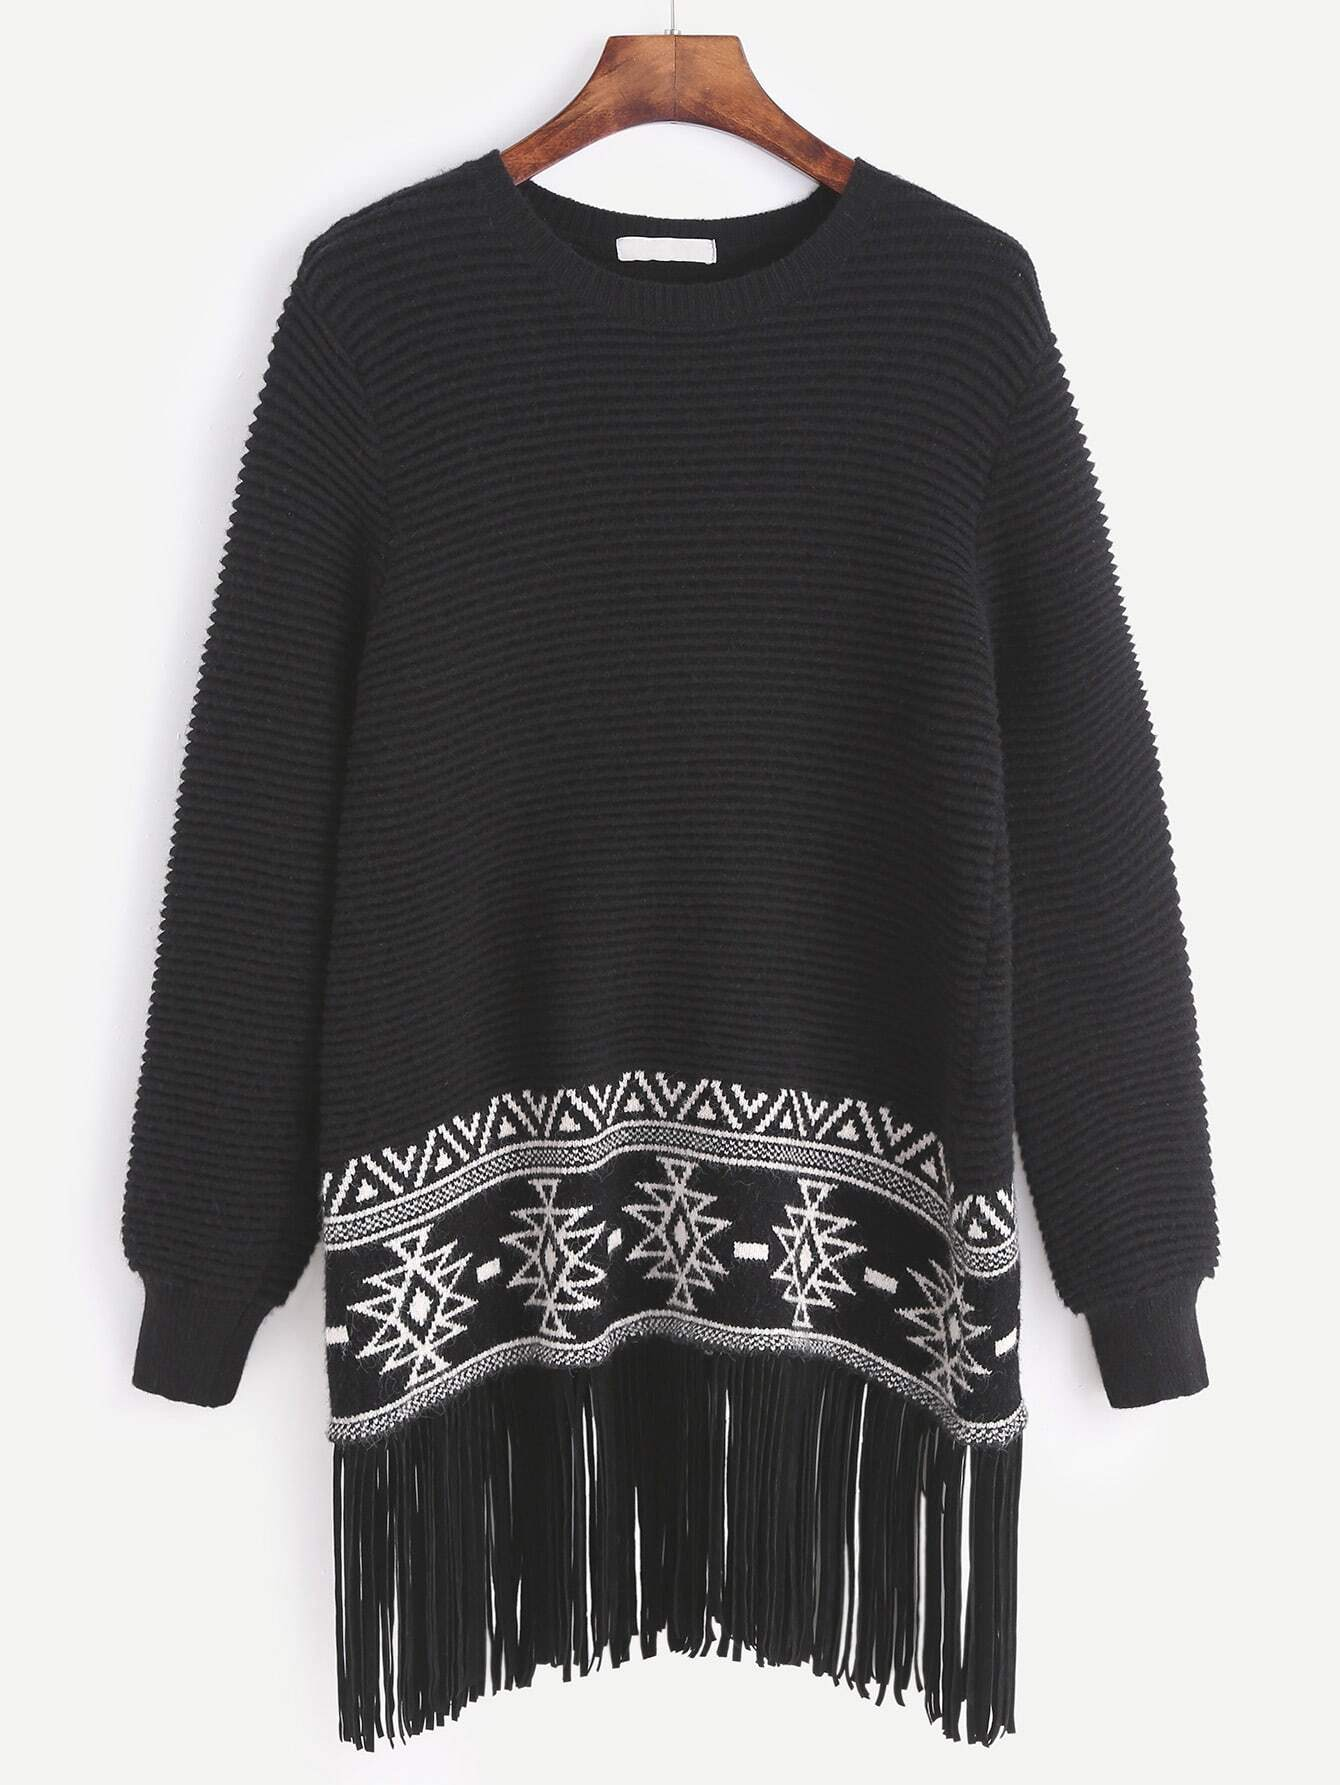 Black Ribbed Knit Tribal Pattern Fringe Sweater sweater161021463